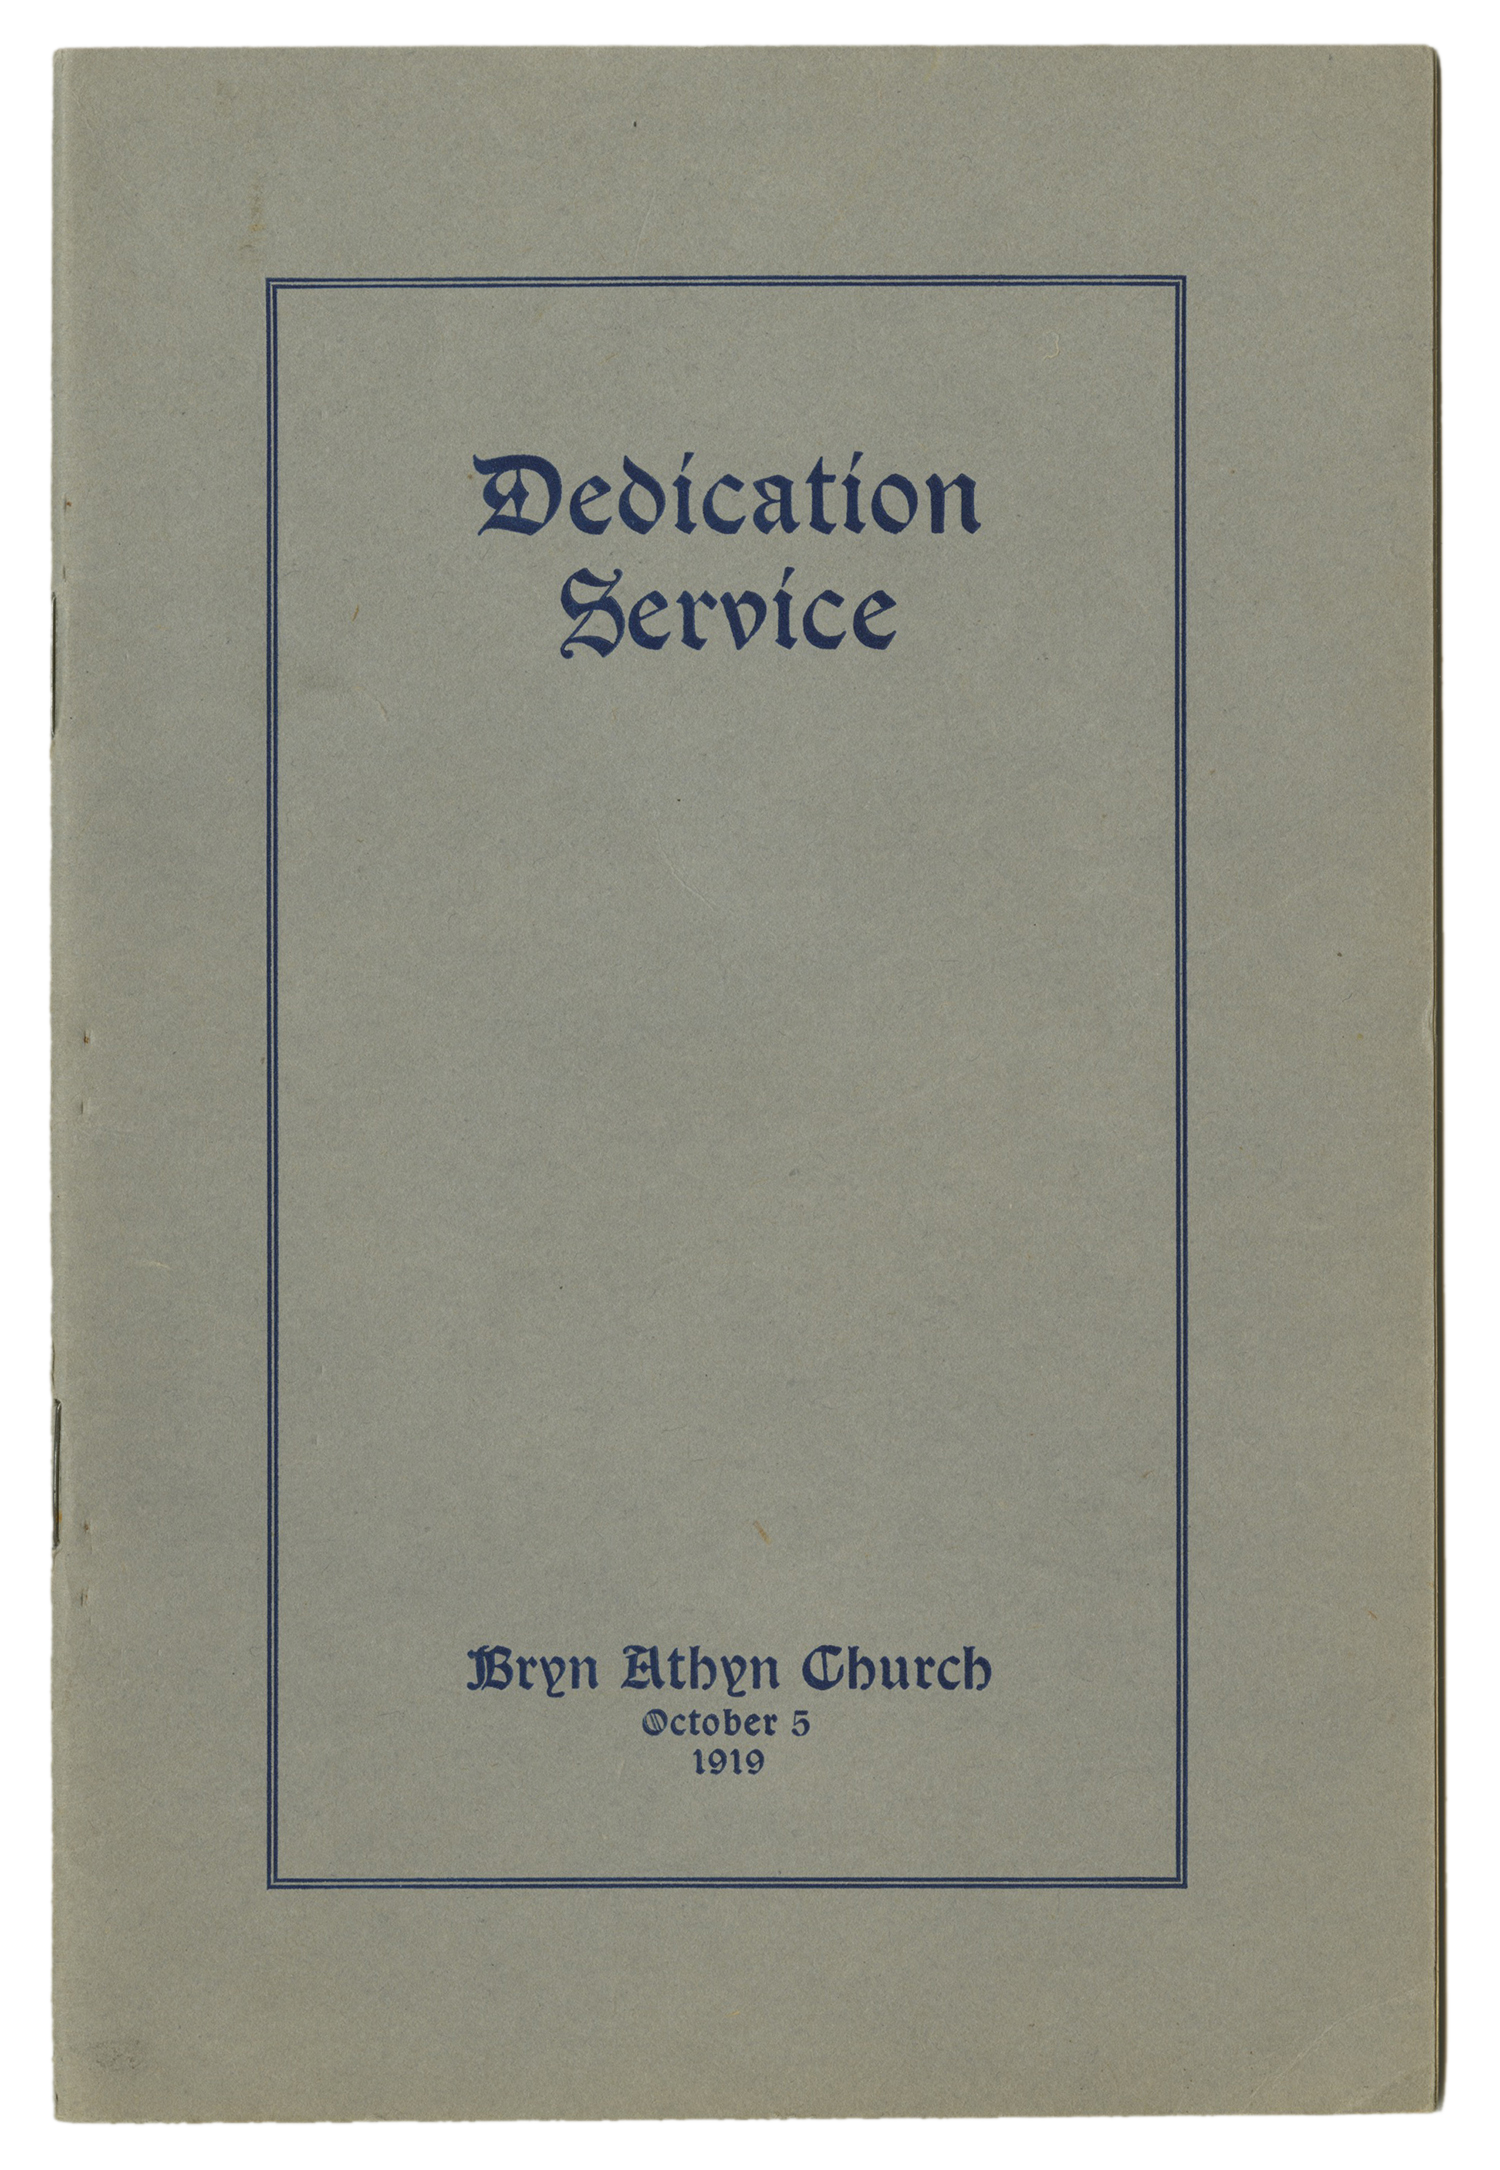 Figure 3: A program was printed for the elaborate eight-part dedication service.